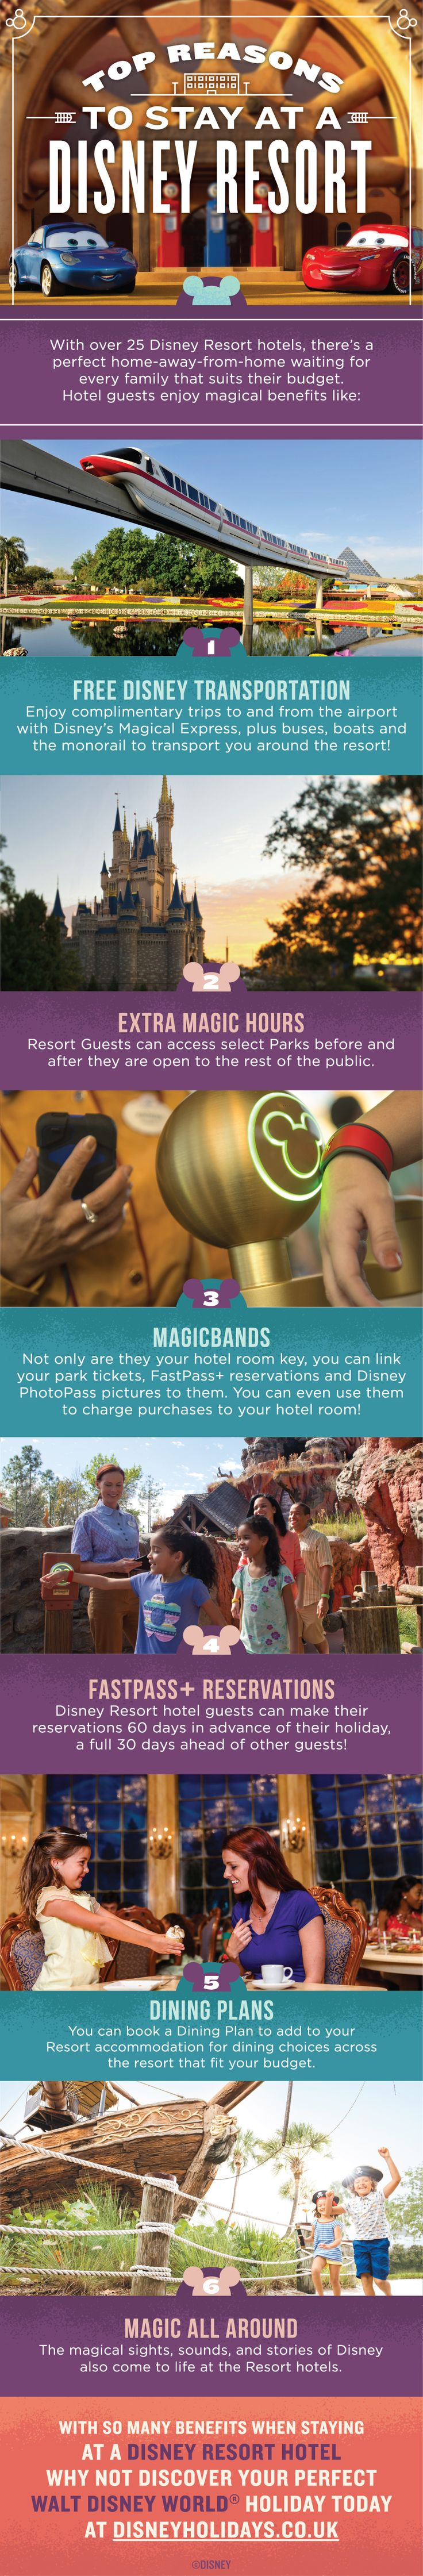 Check out our top reasons to stay at a Walt Disney World Resort hotel and discover all of the amazing benefits that you can enjoy!